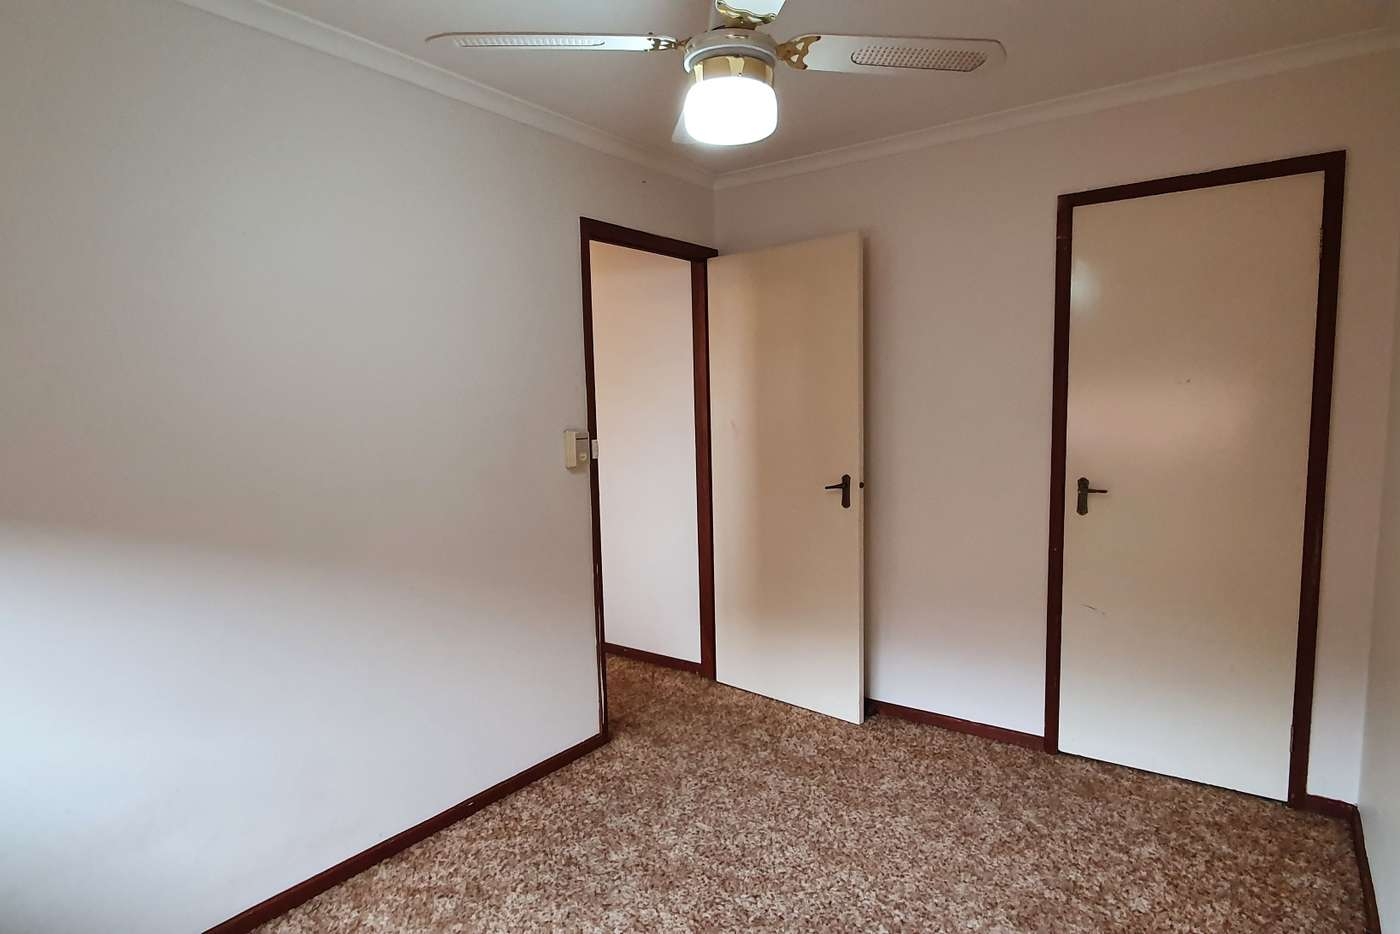 Sixth view of Homely unit listing, 3/15 Flinders Street, Noble Park VIC 3174